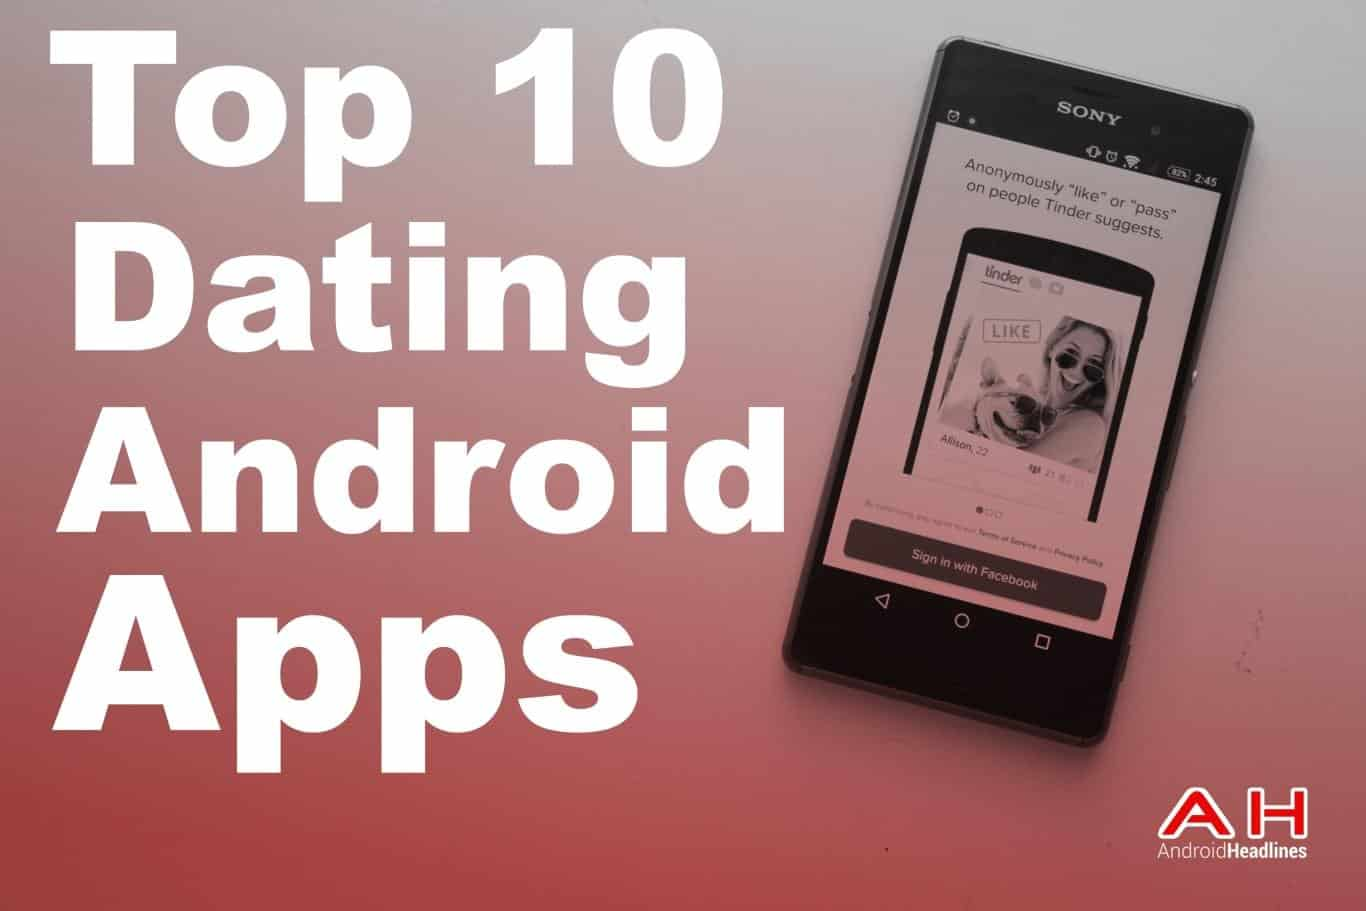 Top dating apps 2016